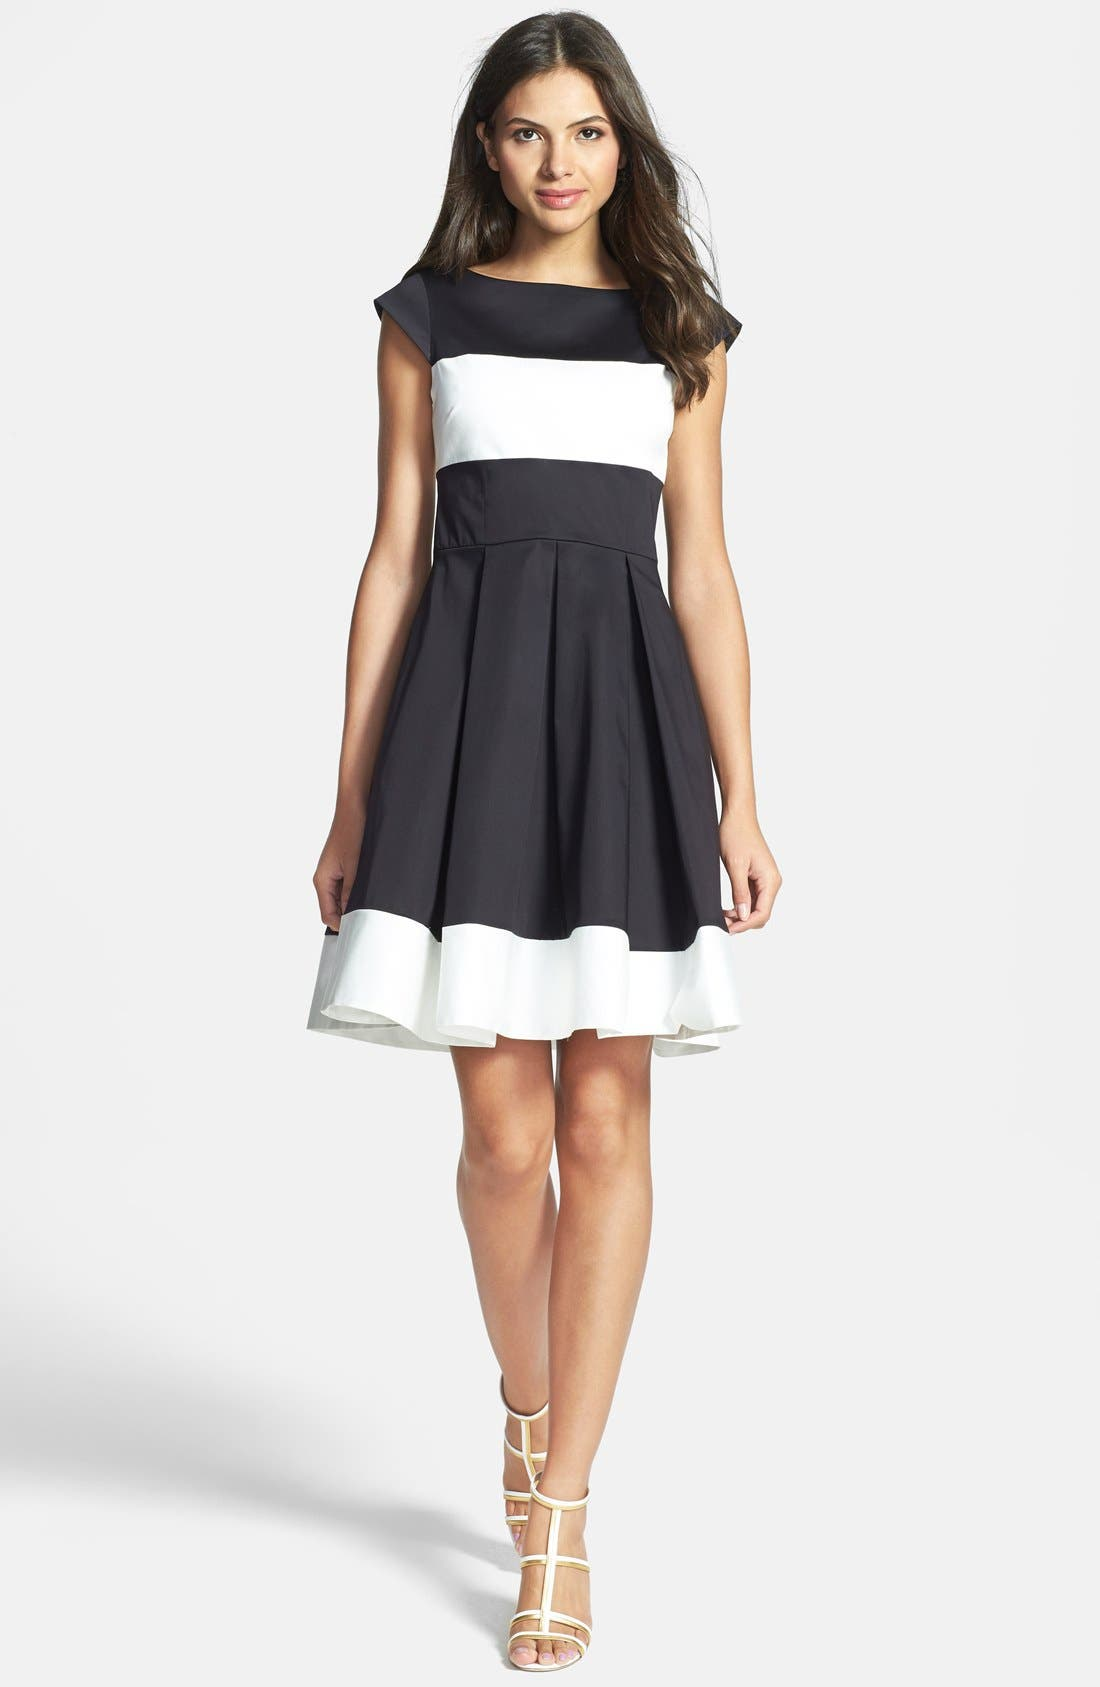 Main Image - kate spade new york 'adette' colorblock woven fit & flare dress